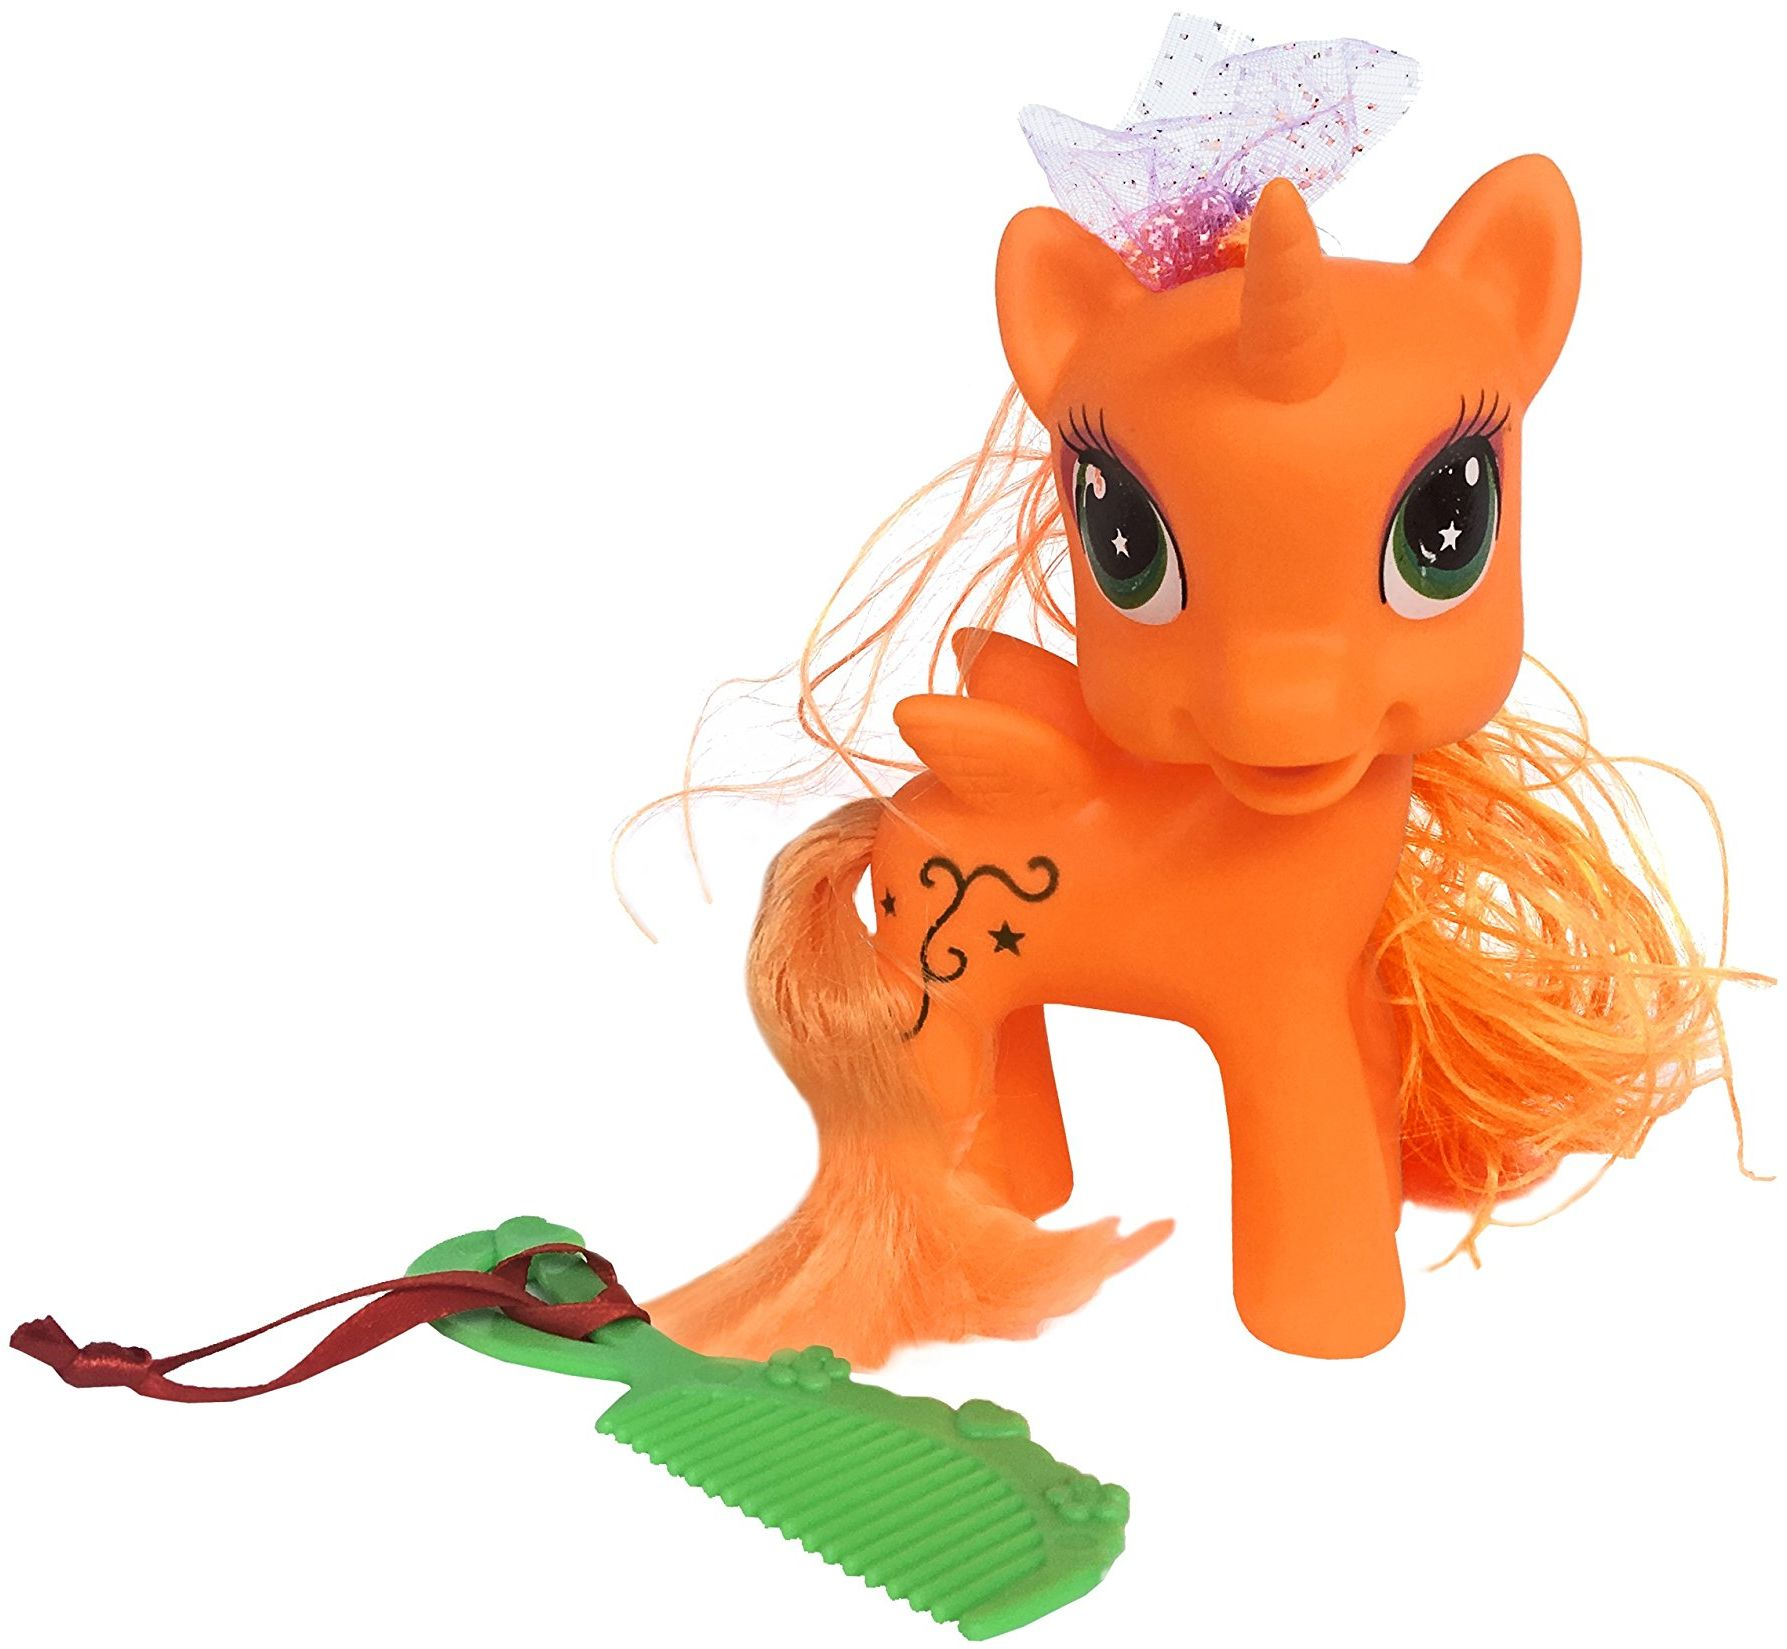 FUN Toys 10123 My Little Pony